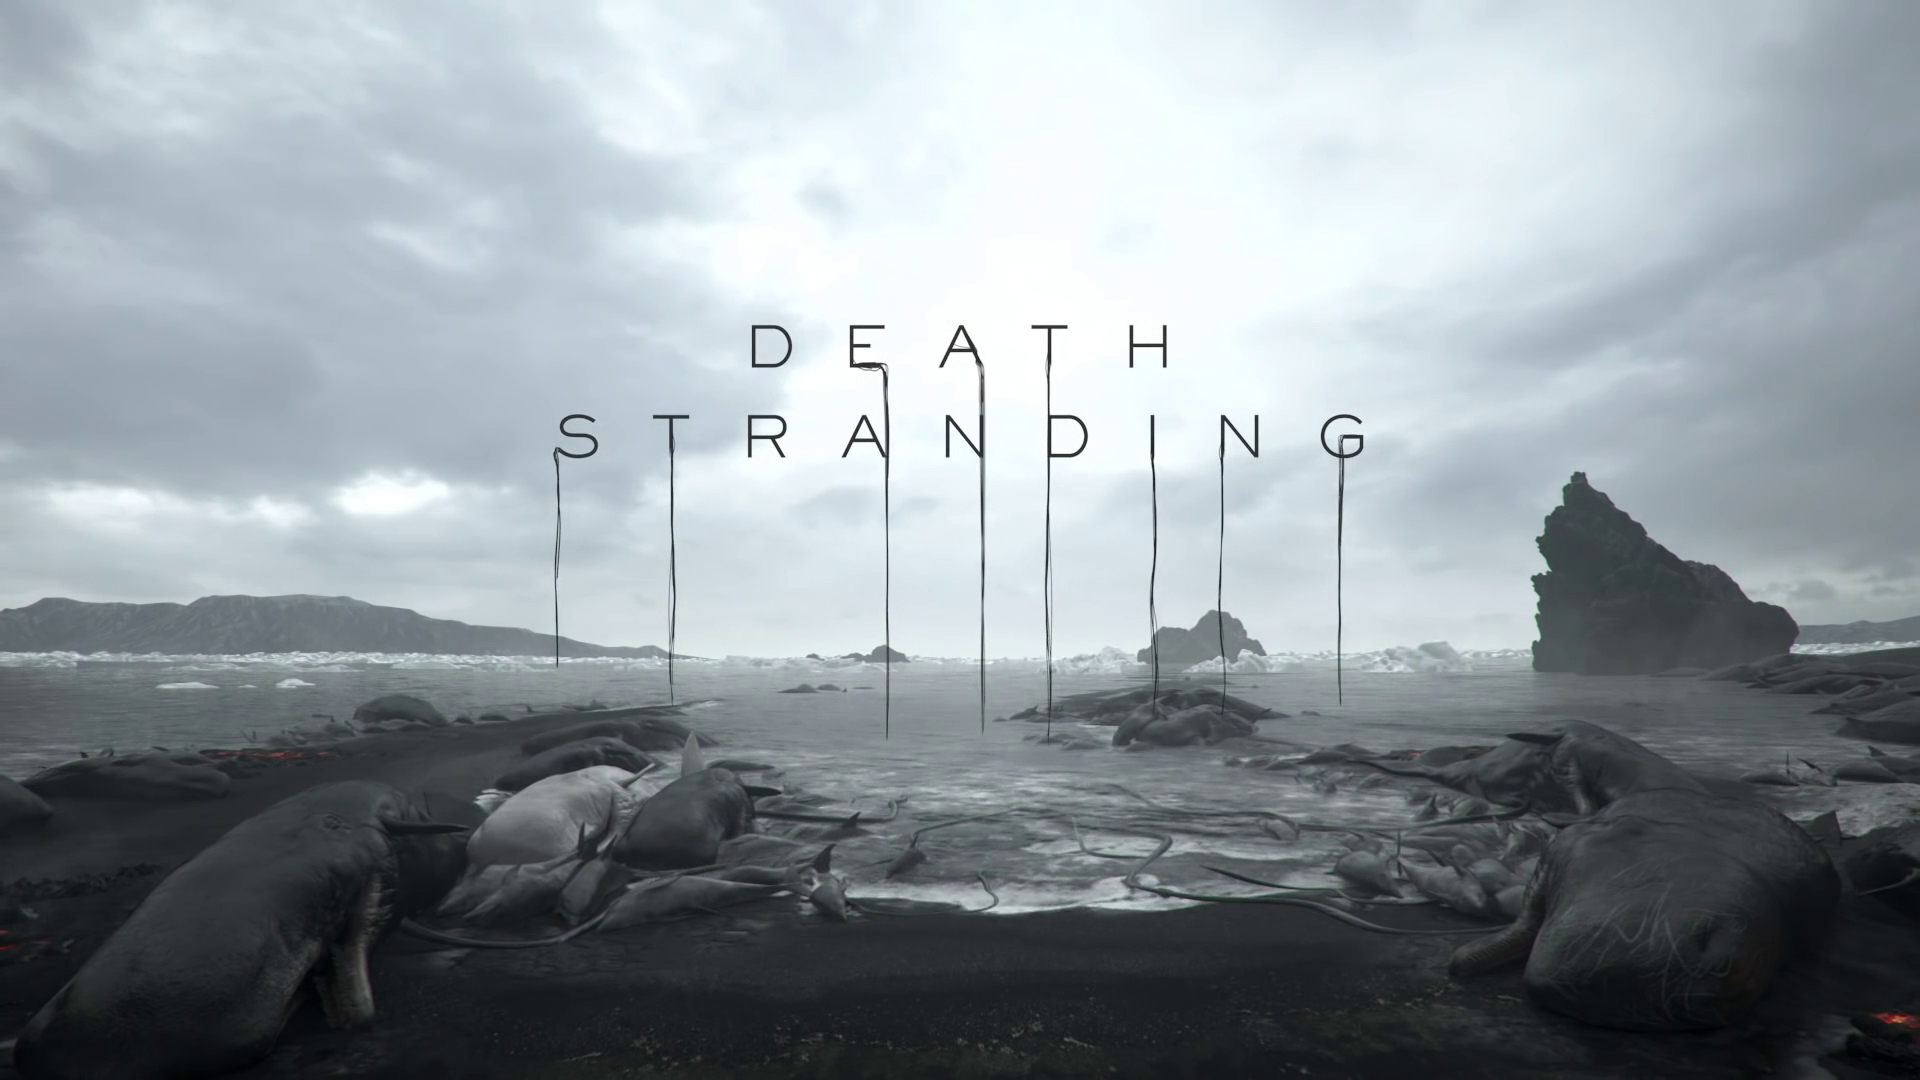 death_stranding_kojima_productions_2017_109966_1920x1080